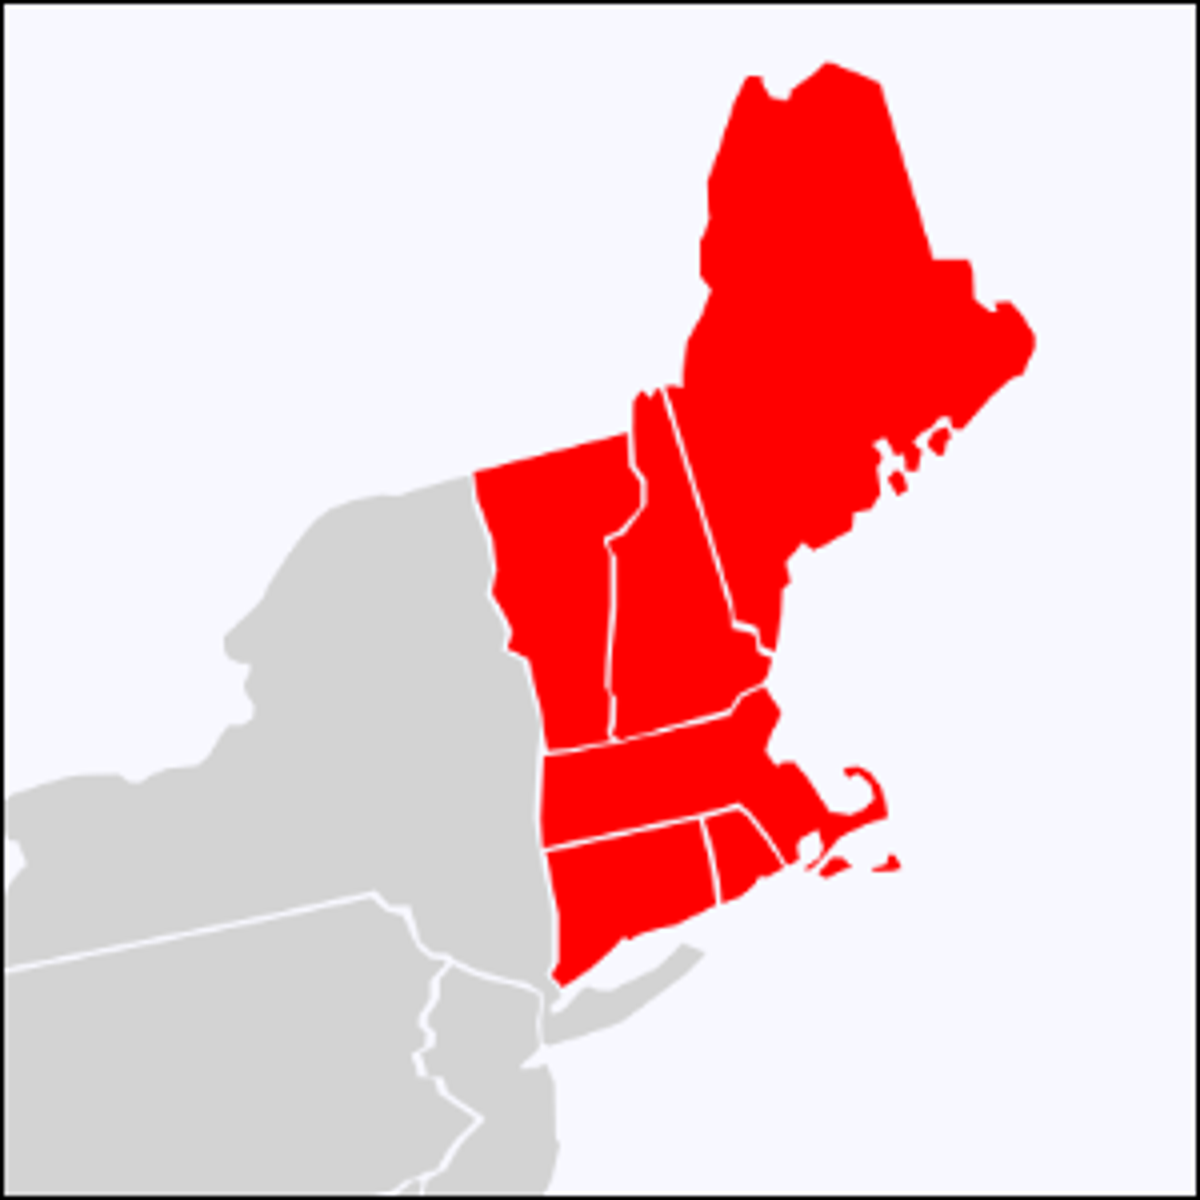 A map highlighting the six states of New England.